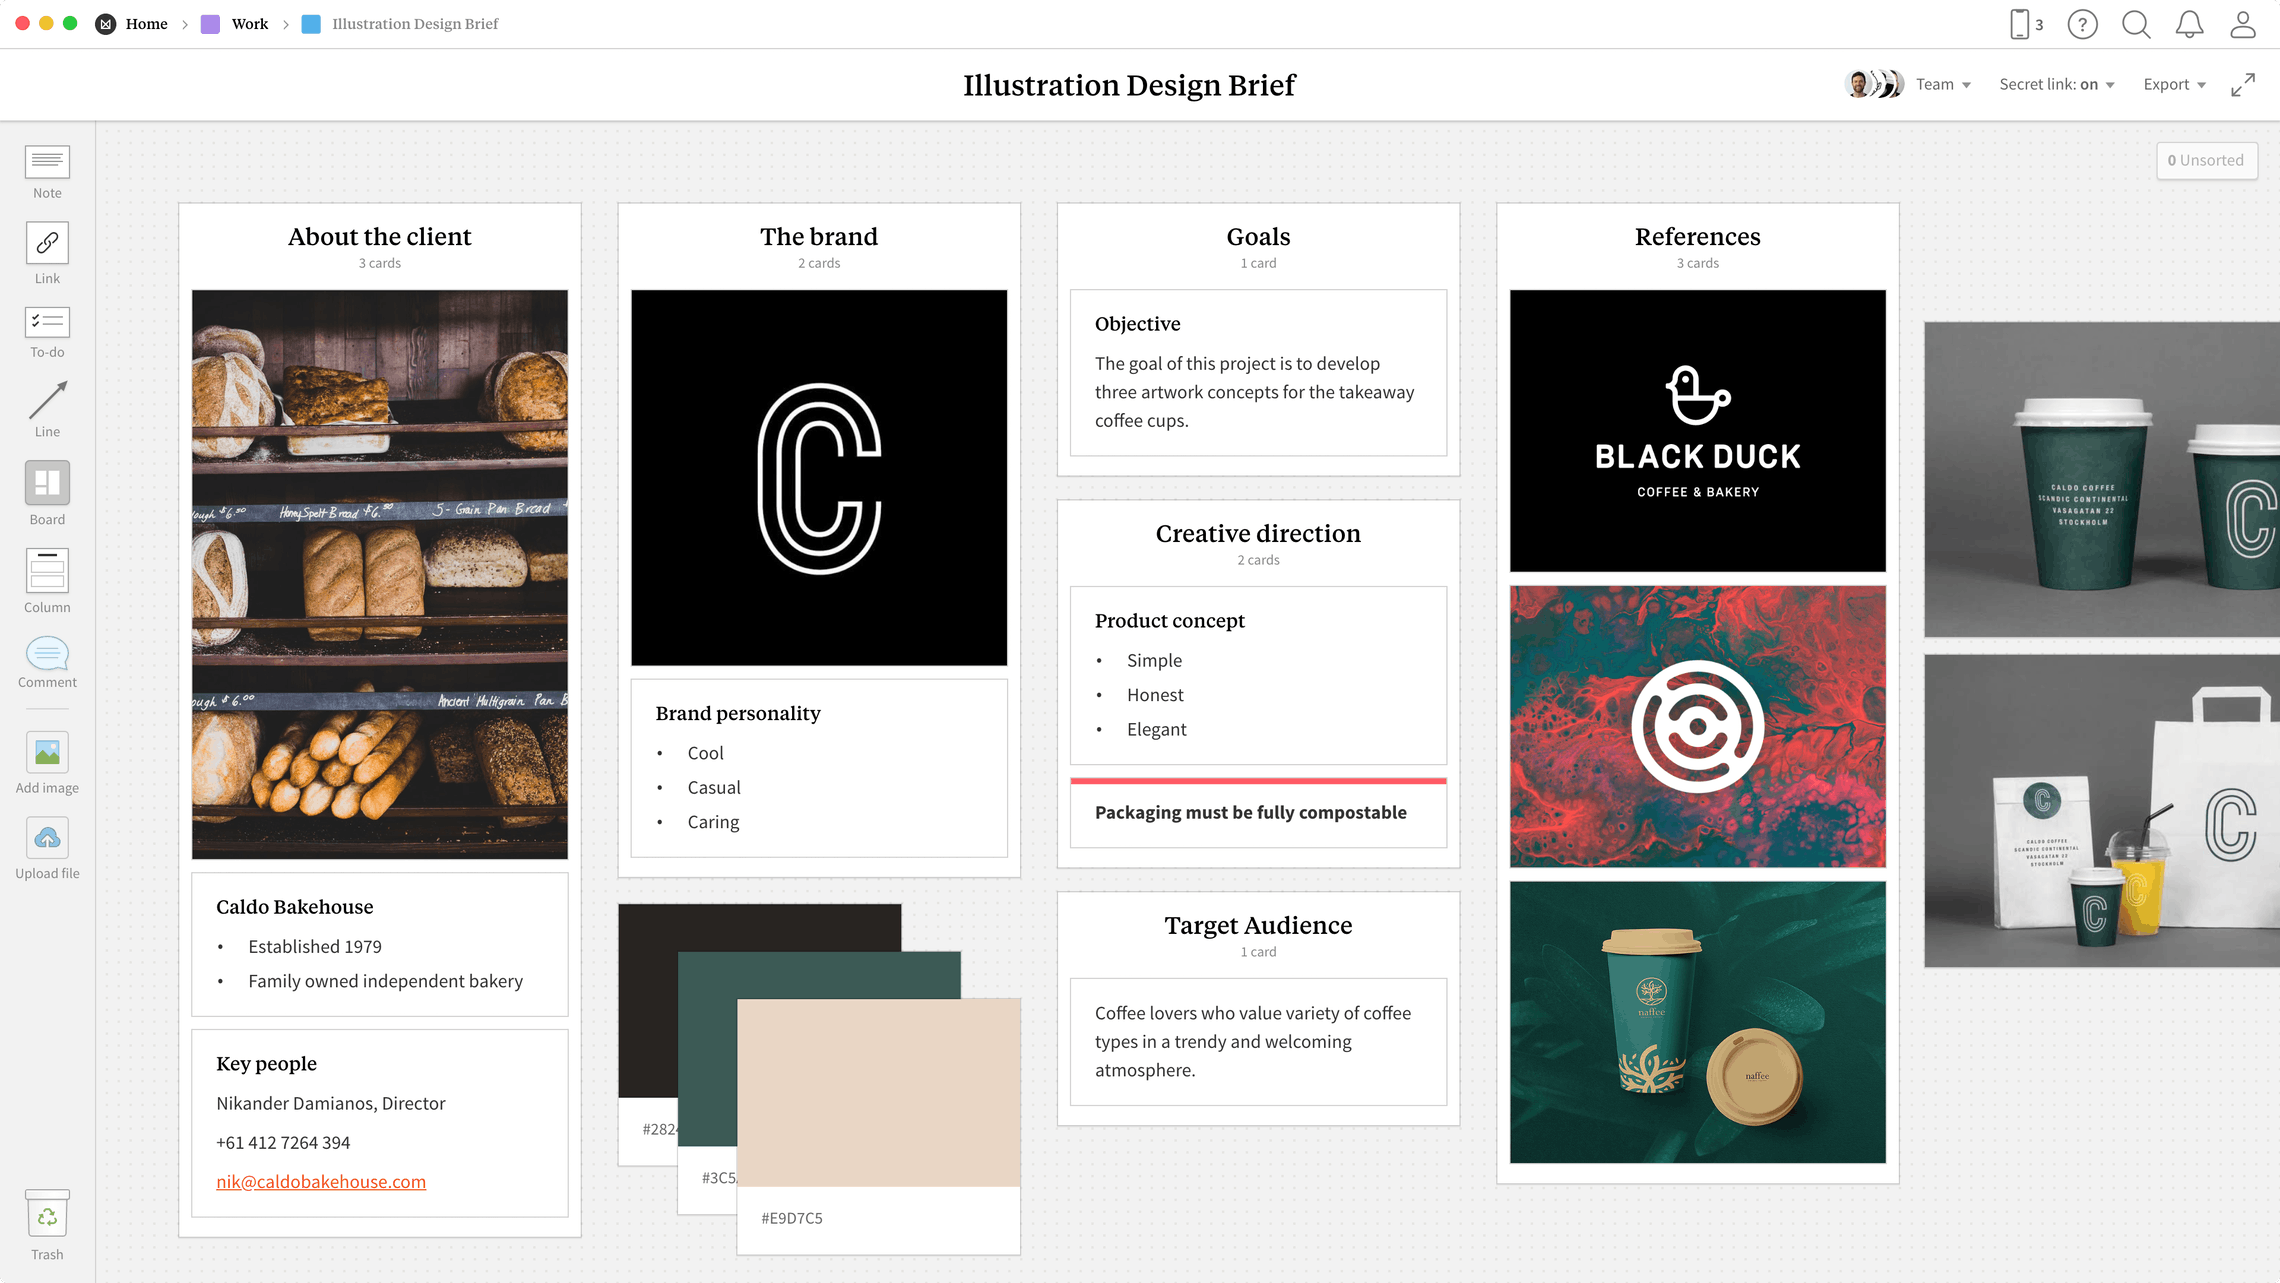 Illustration Design Brief  Template, within the Milanote app